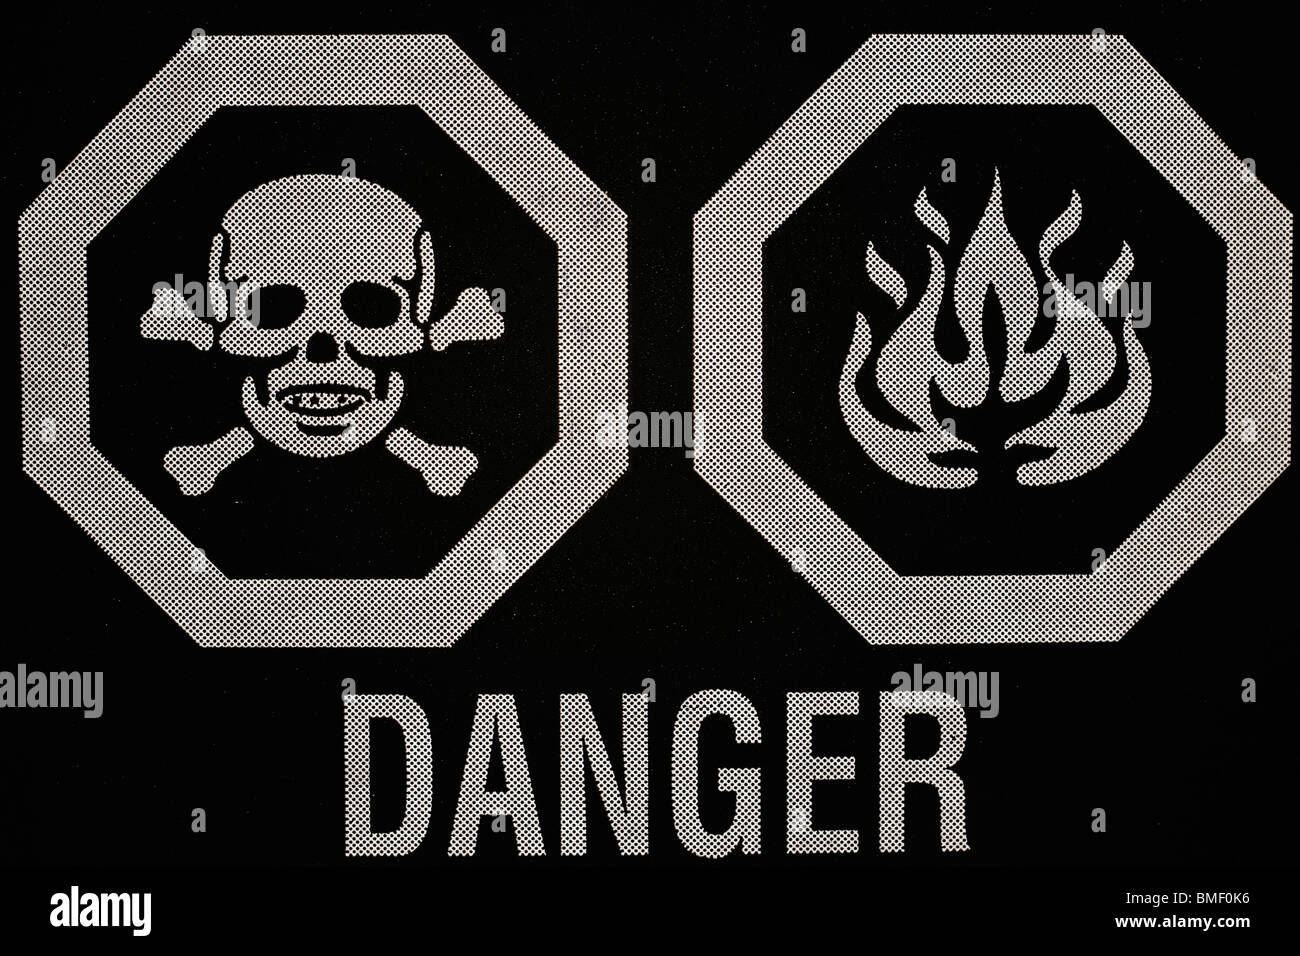 Poison and flammable symbols on a label saying danger stock photo poison and flammable symbols on a label saying danger buycottarizona